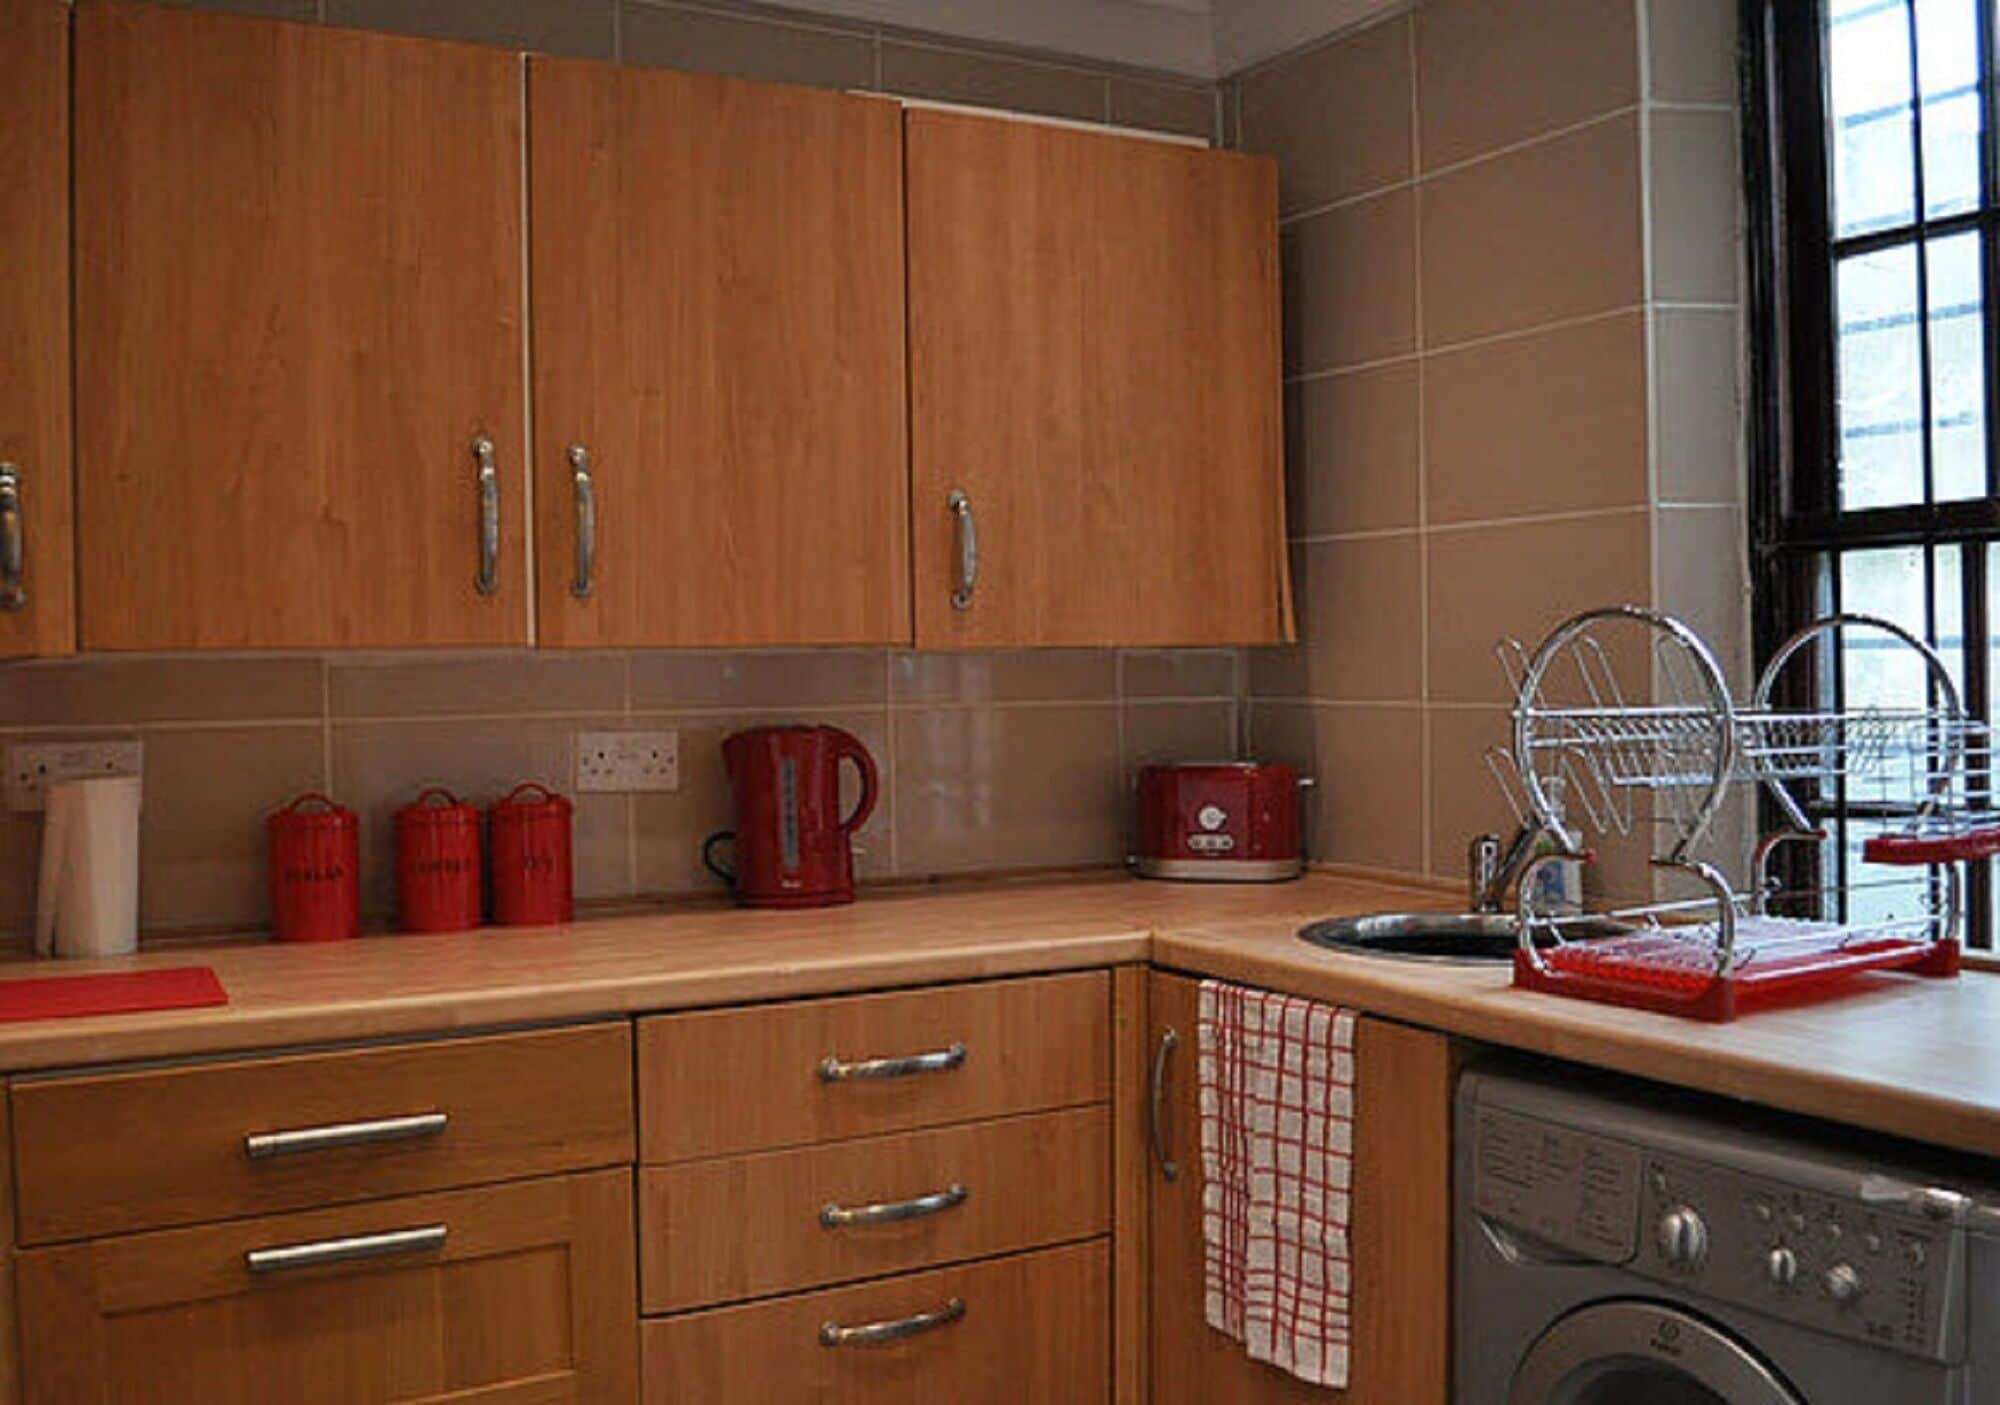 Gate House Apartment, Stockton-on-Tees